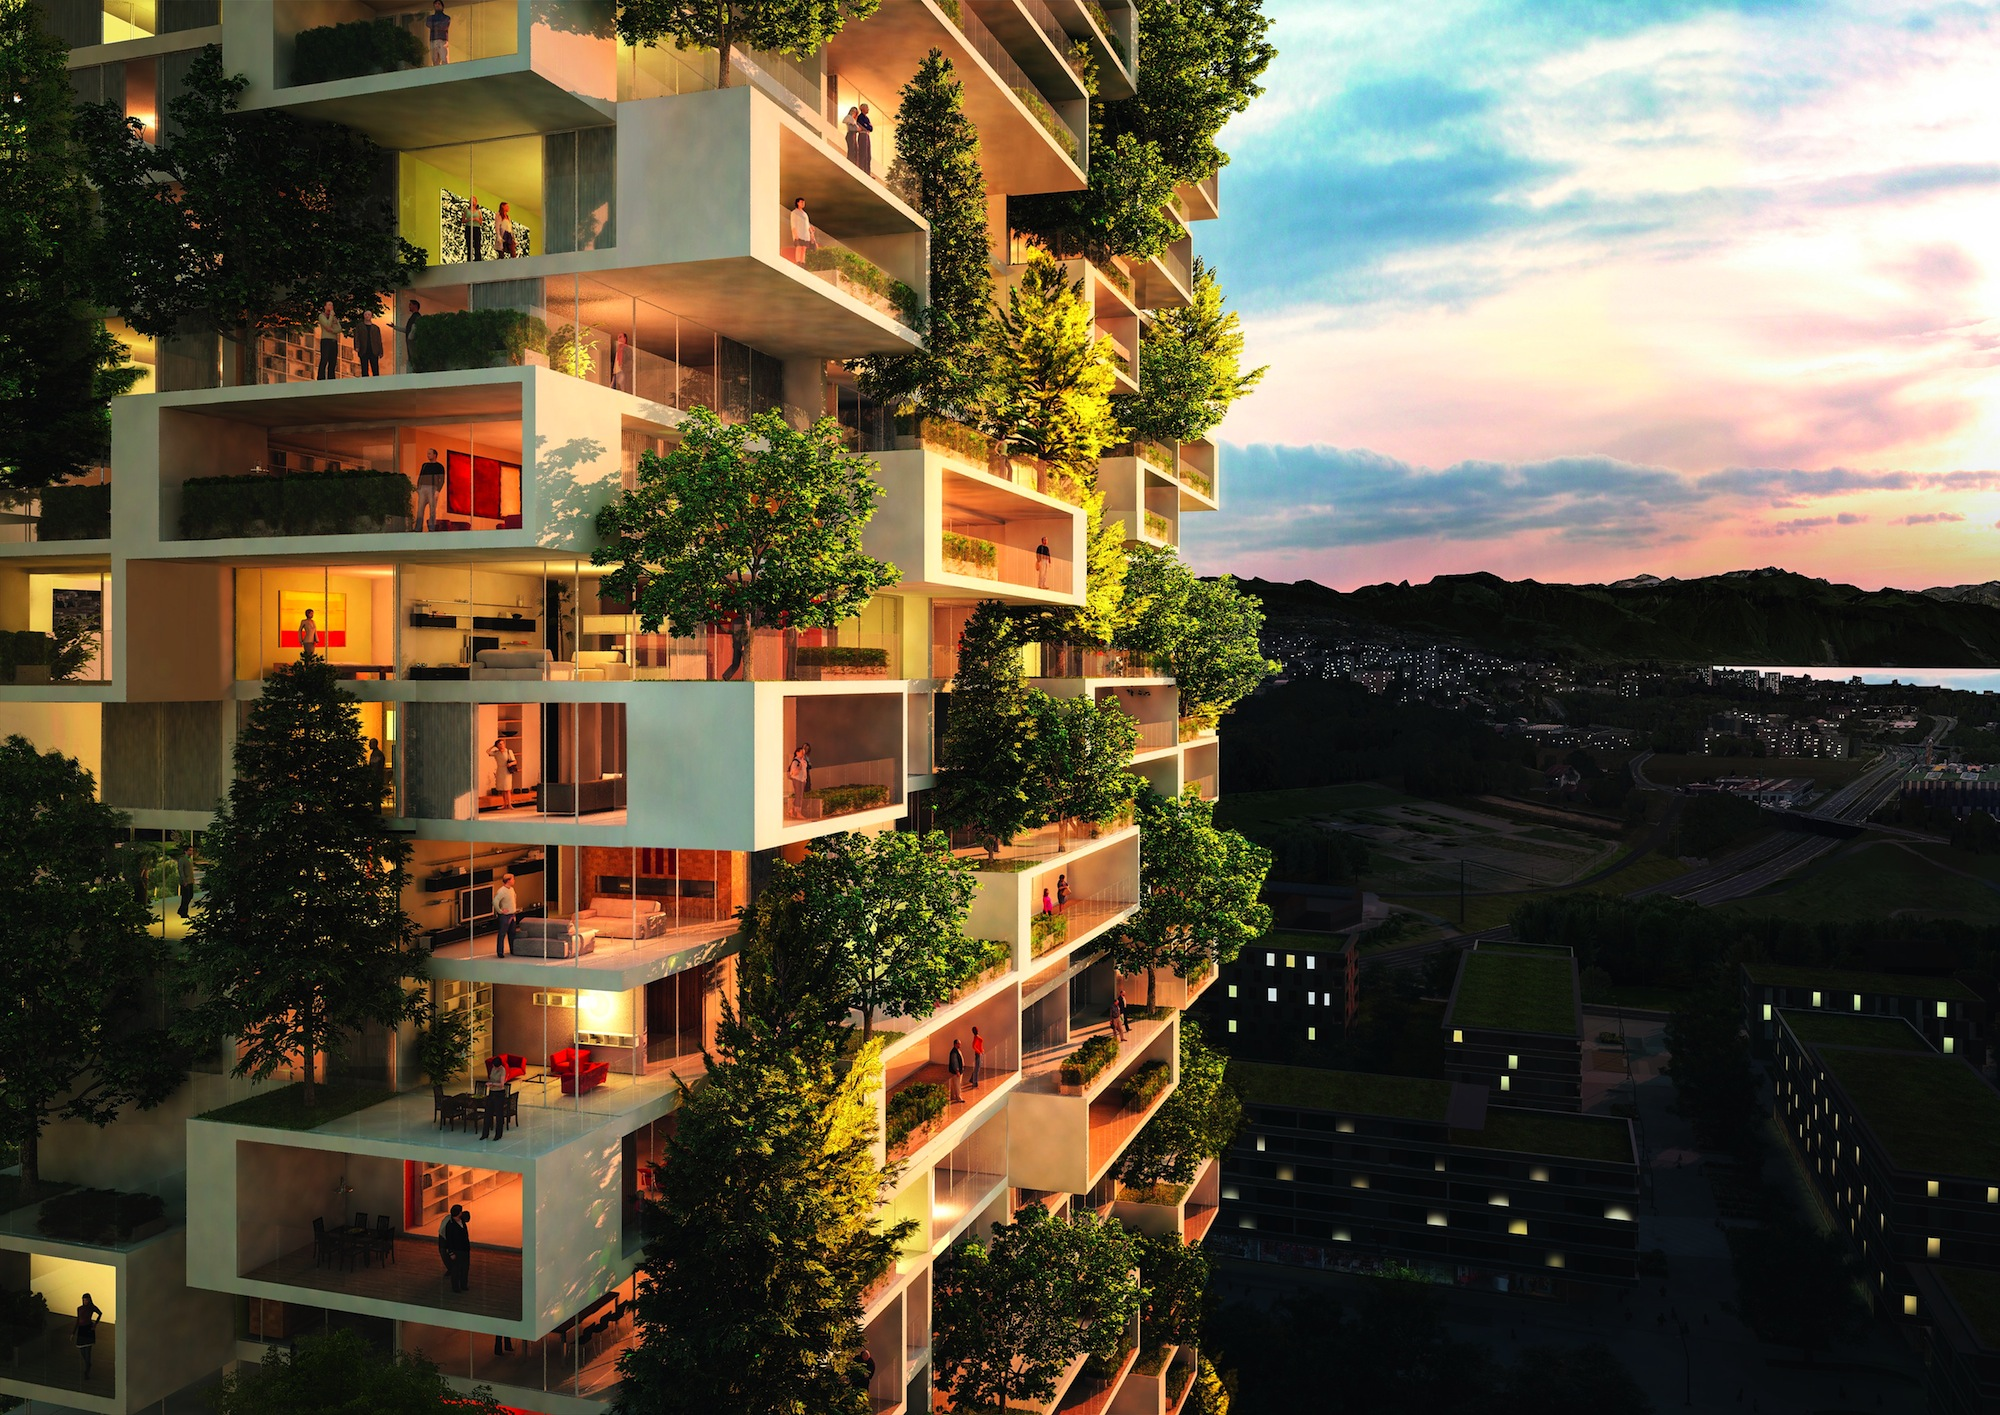 The 36-floor, 384-foot Tower of the Cedars in Switzerland will feature apartments in various sizes